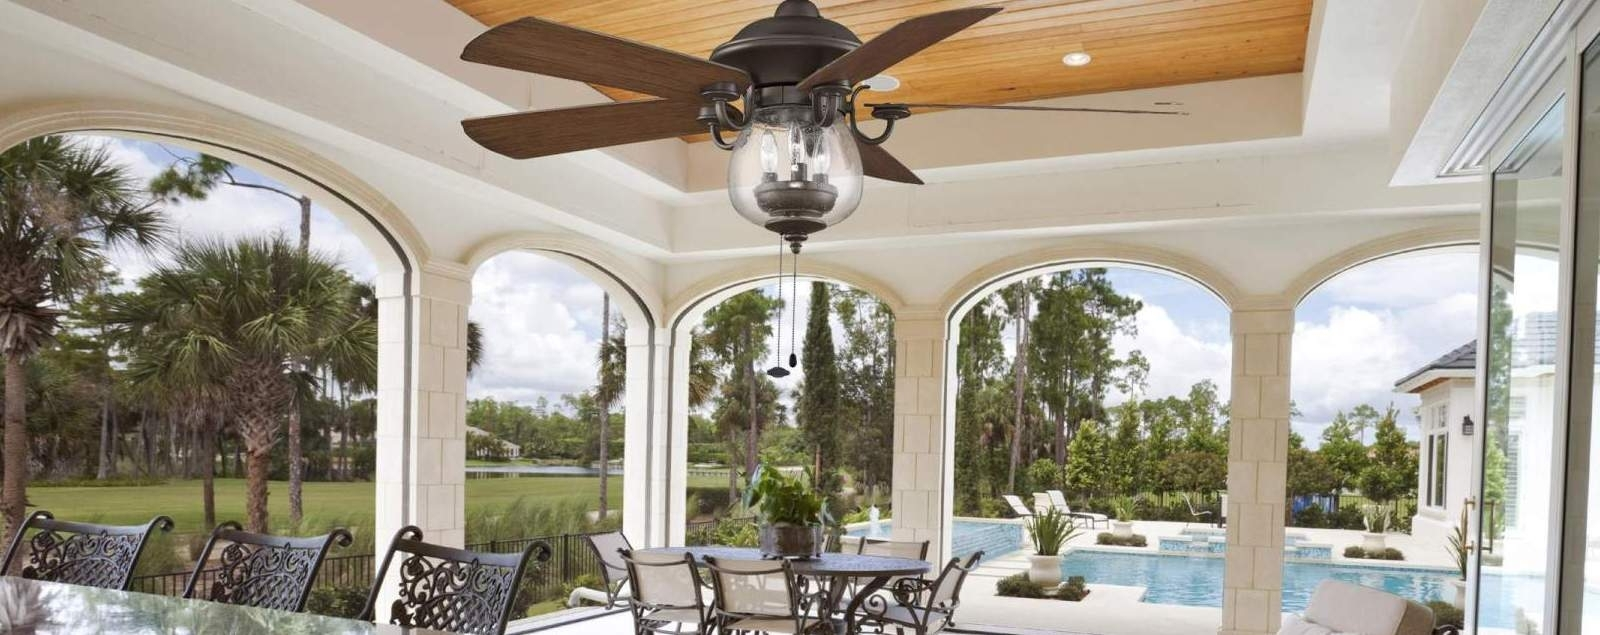 Favorite High Output Outdoor Ceiling Fans Regarding Outdoor Ceiling Fans – Shop Wet, Dry, And Damp Rated Outdoor Fans (View 3 of 20)